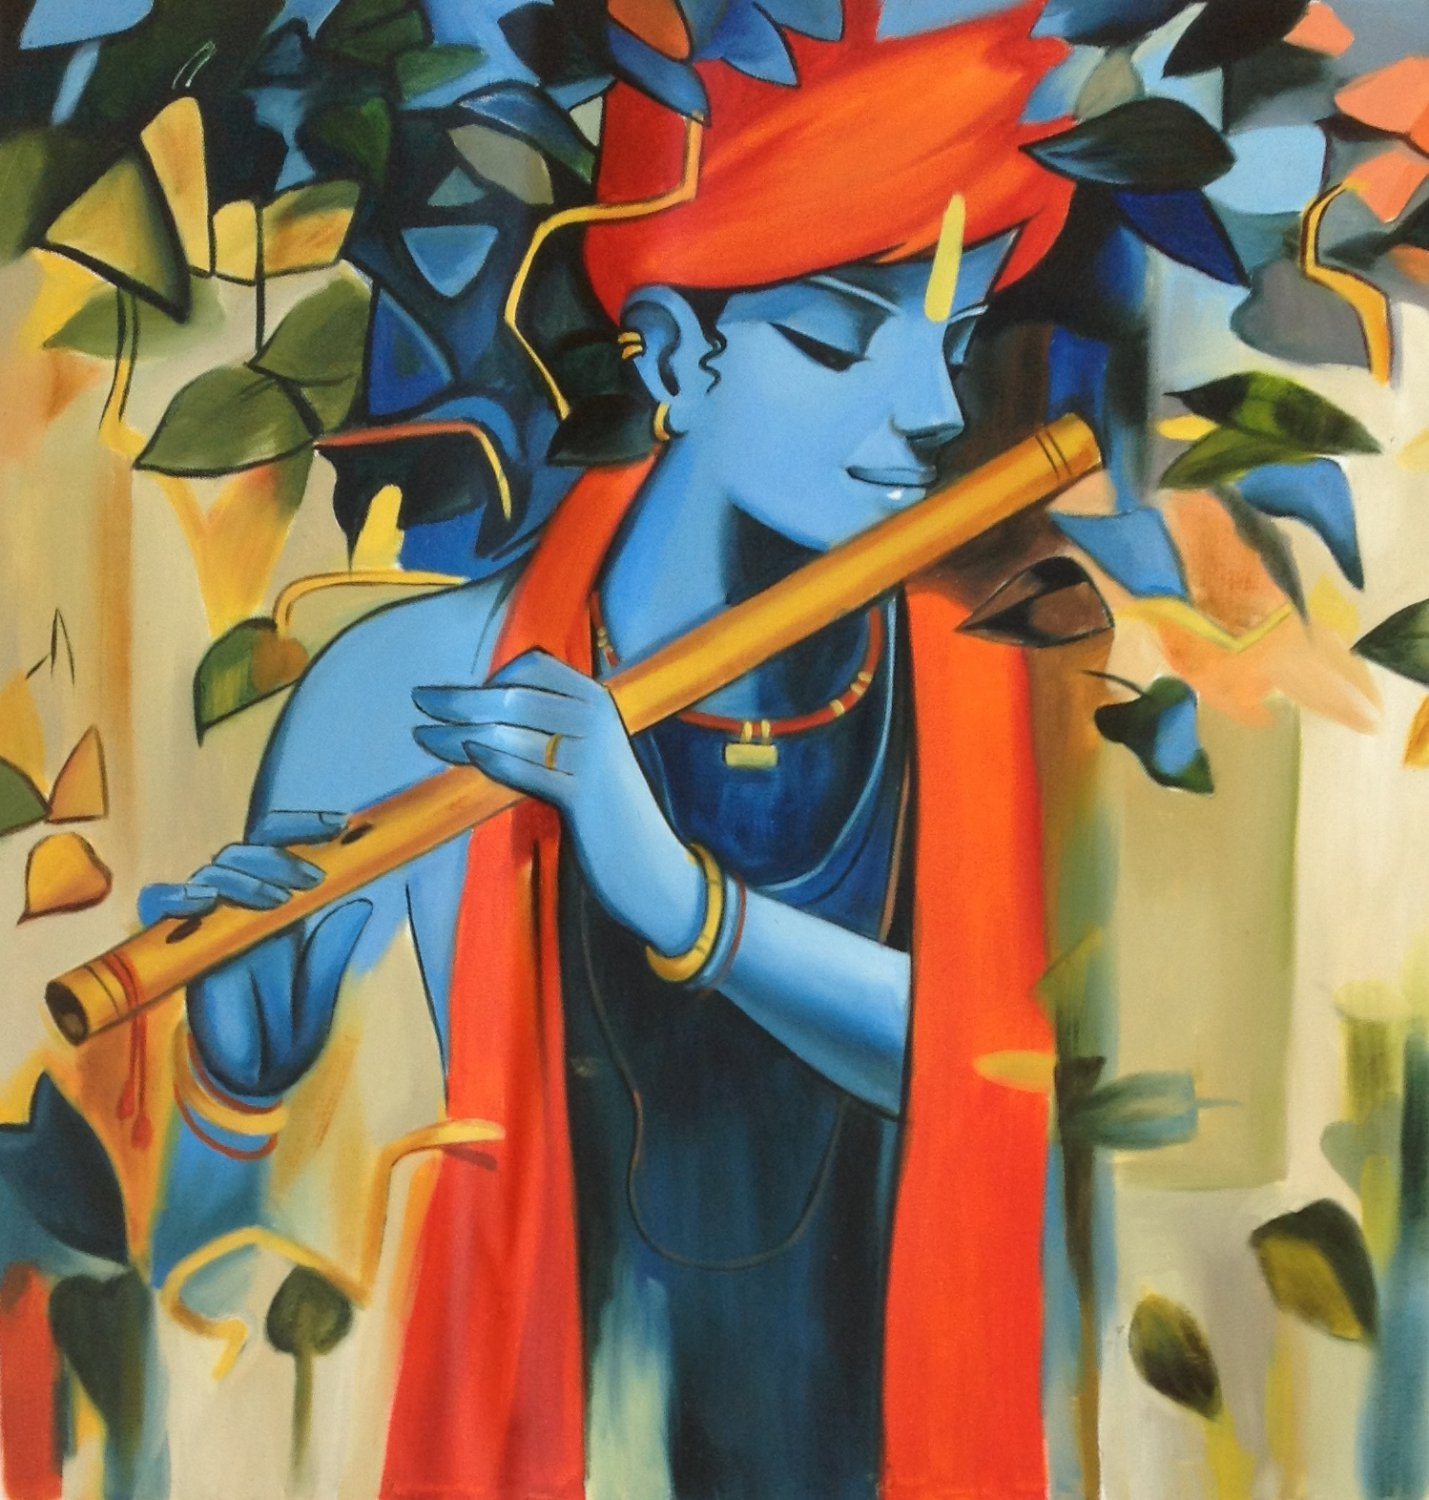 Trusted Home Painting Services In India: Krishna Hindu Deity Art Handmade Indian Portrait Oil On